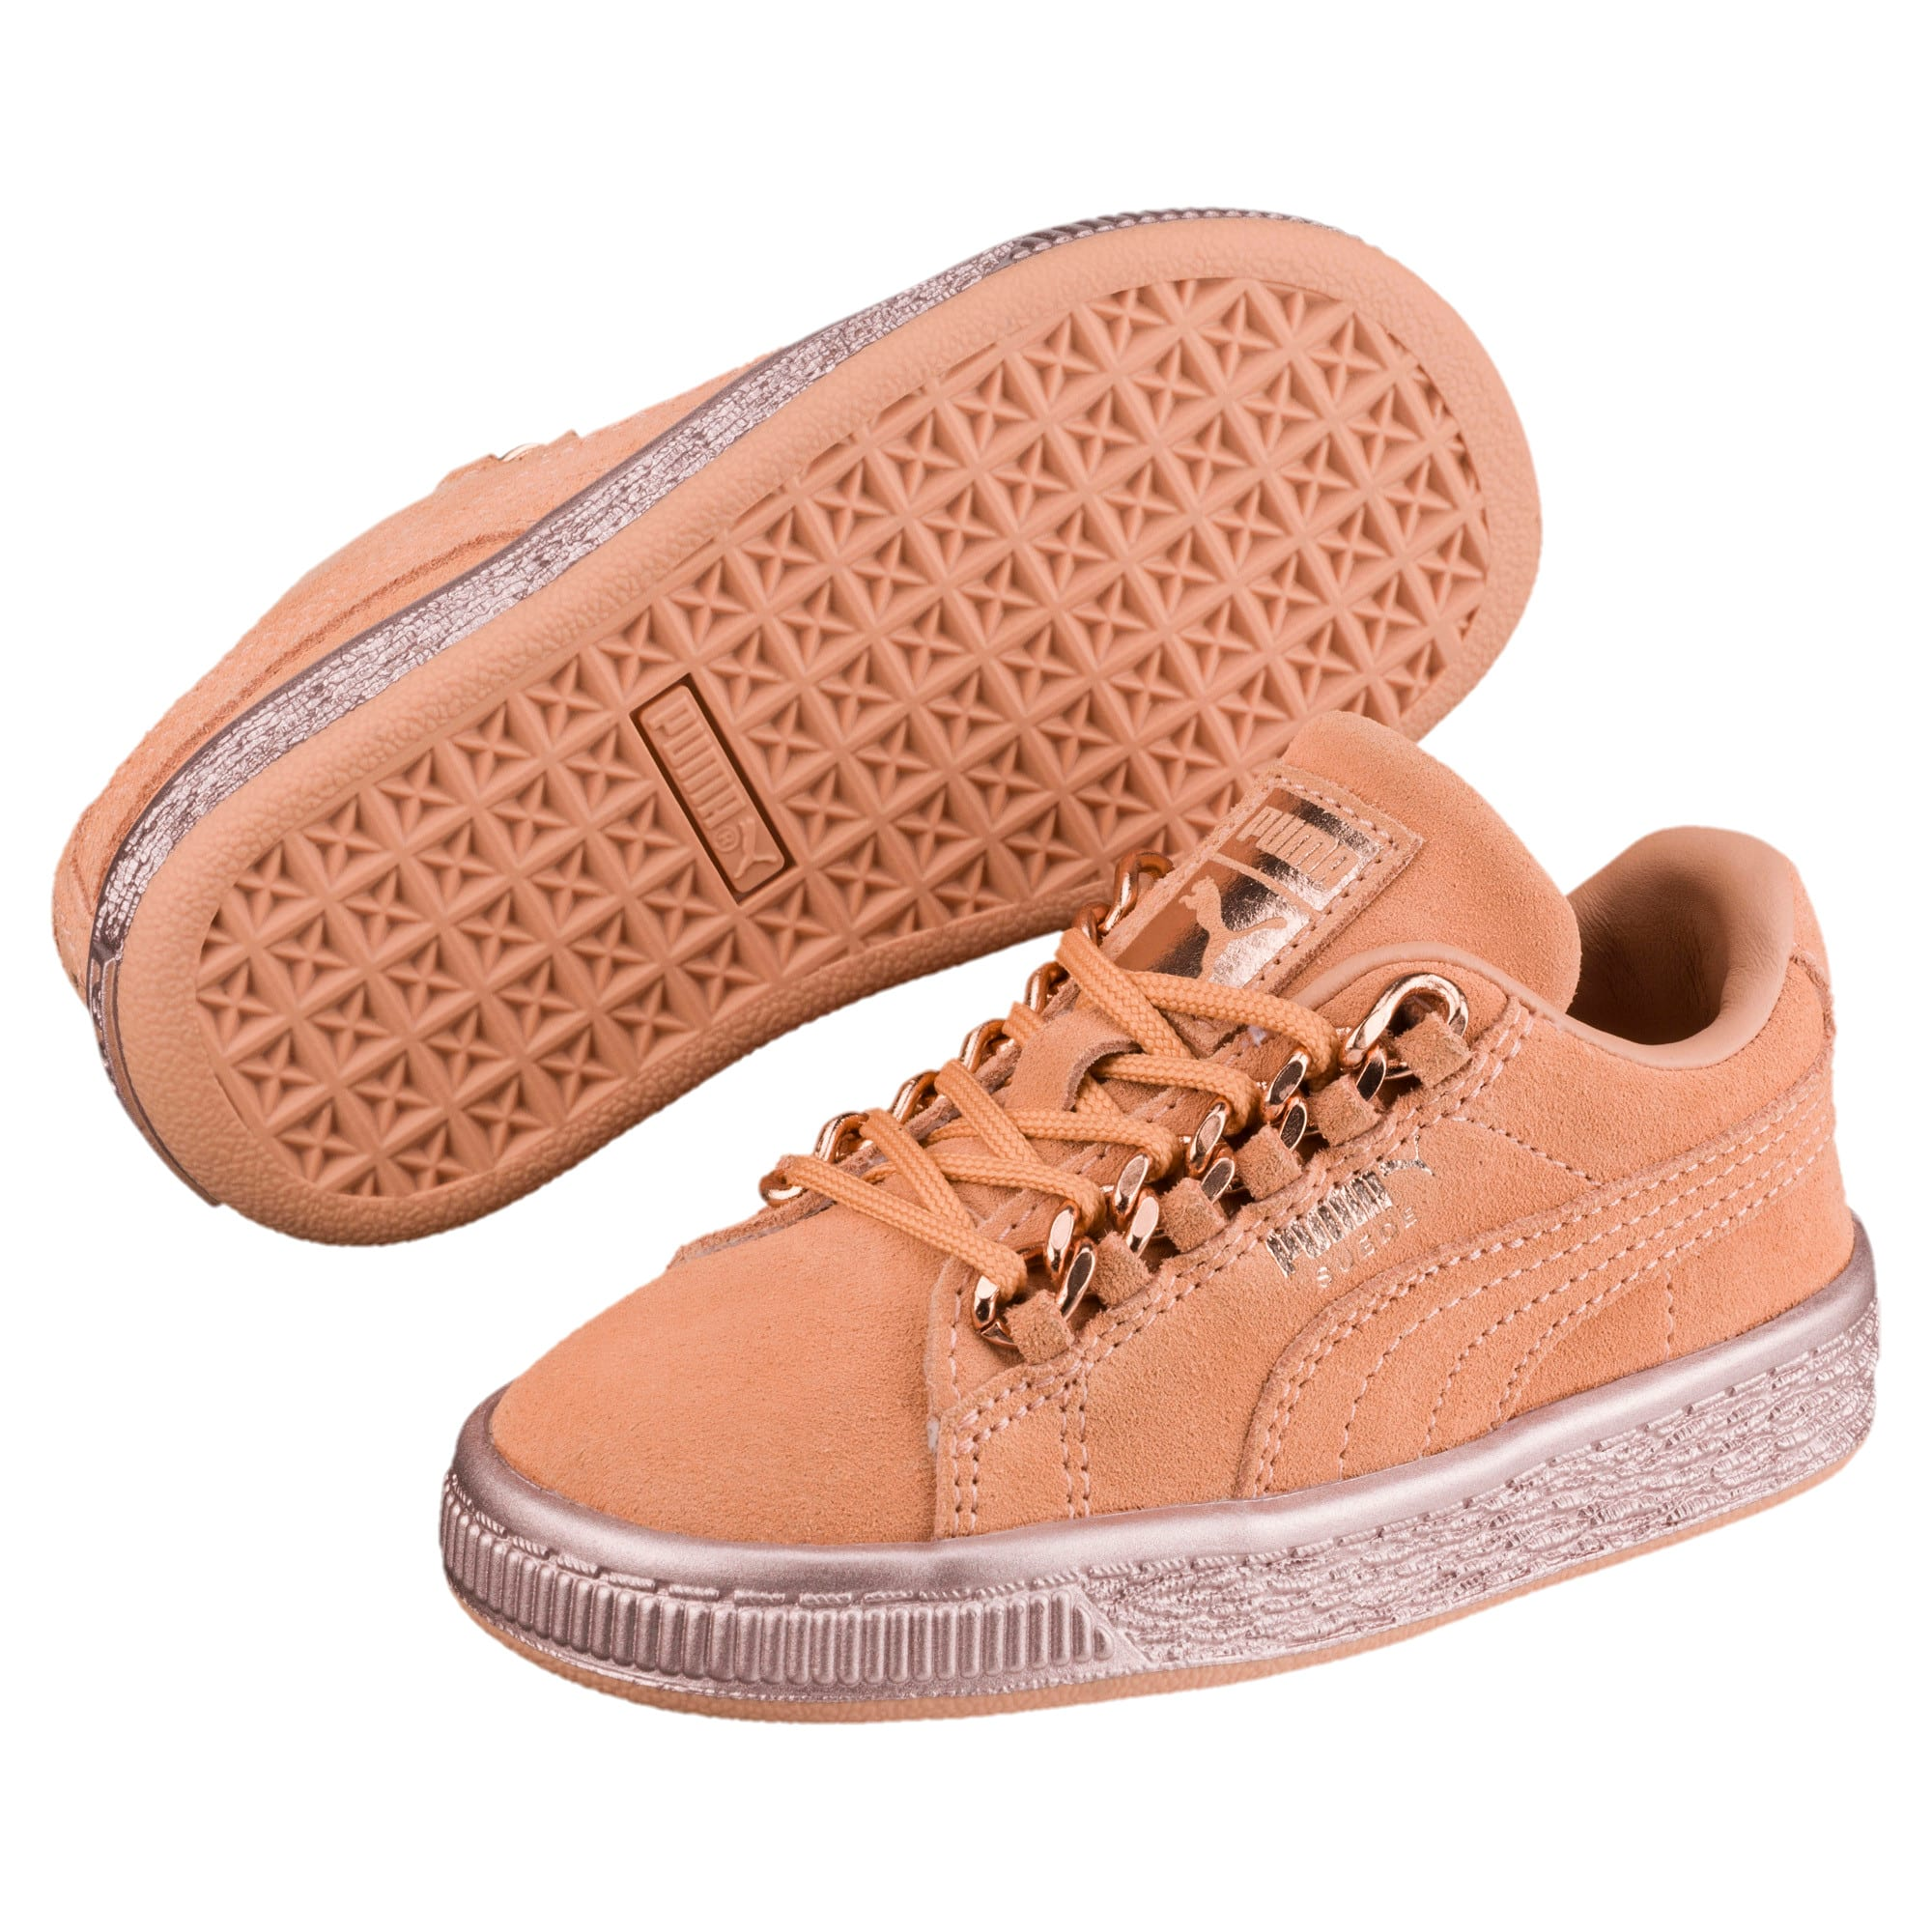 Thumbnail 2 of Suede Classic X-Chain Little Kids' Shoes, Dusty Coral-Rose Gold, medium